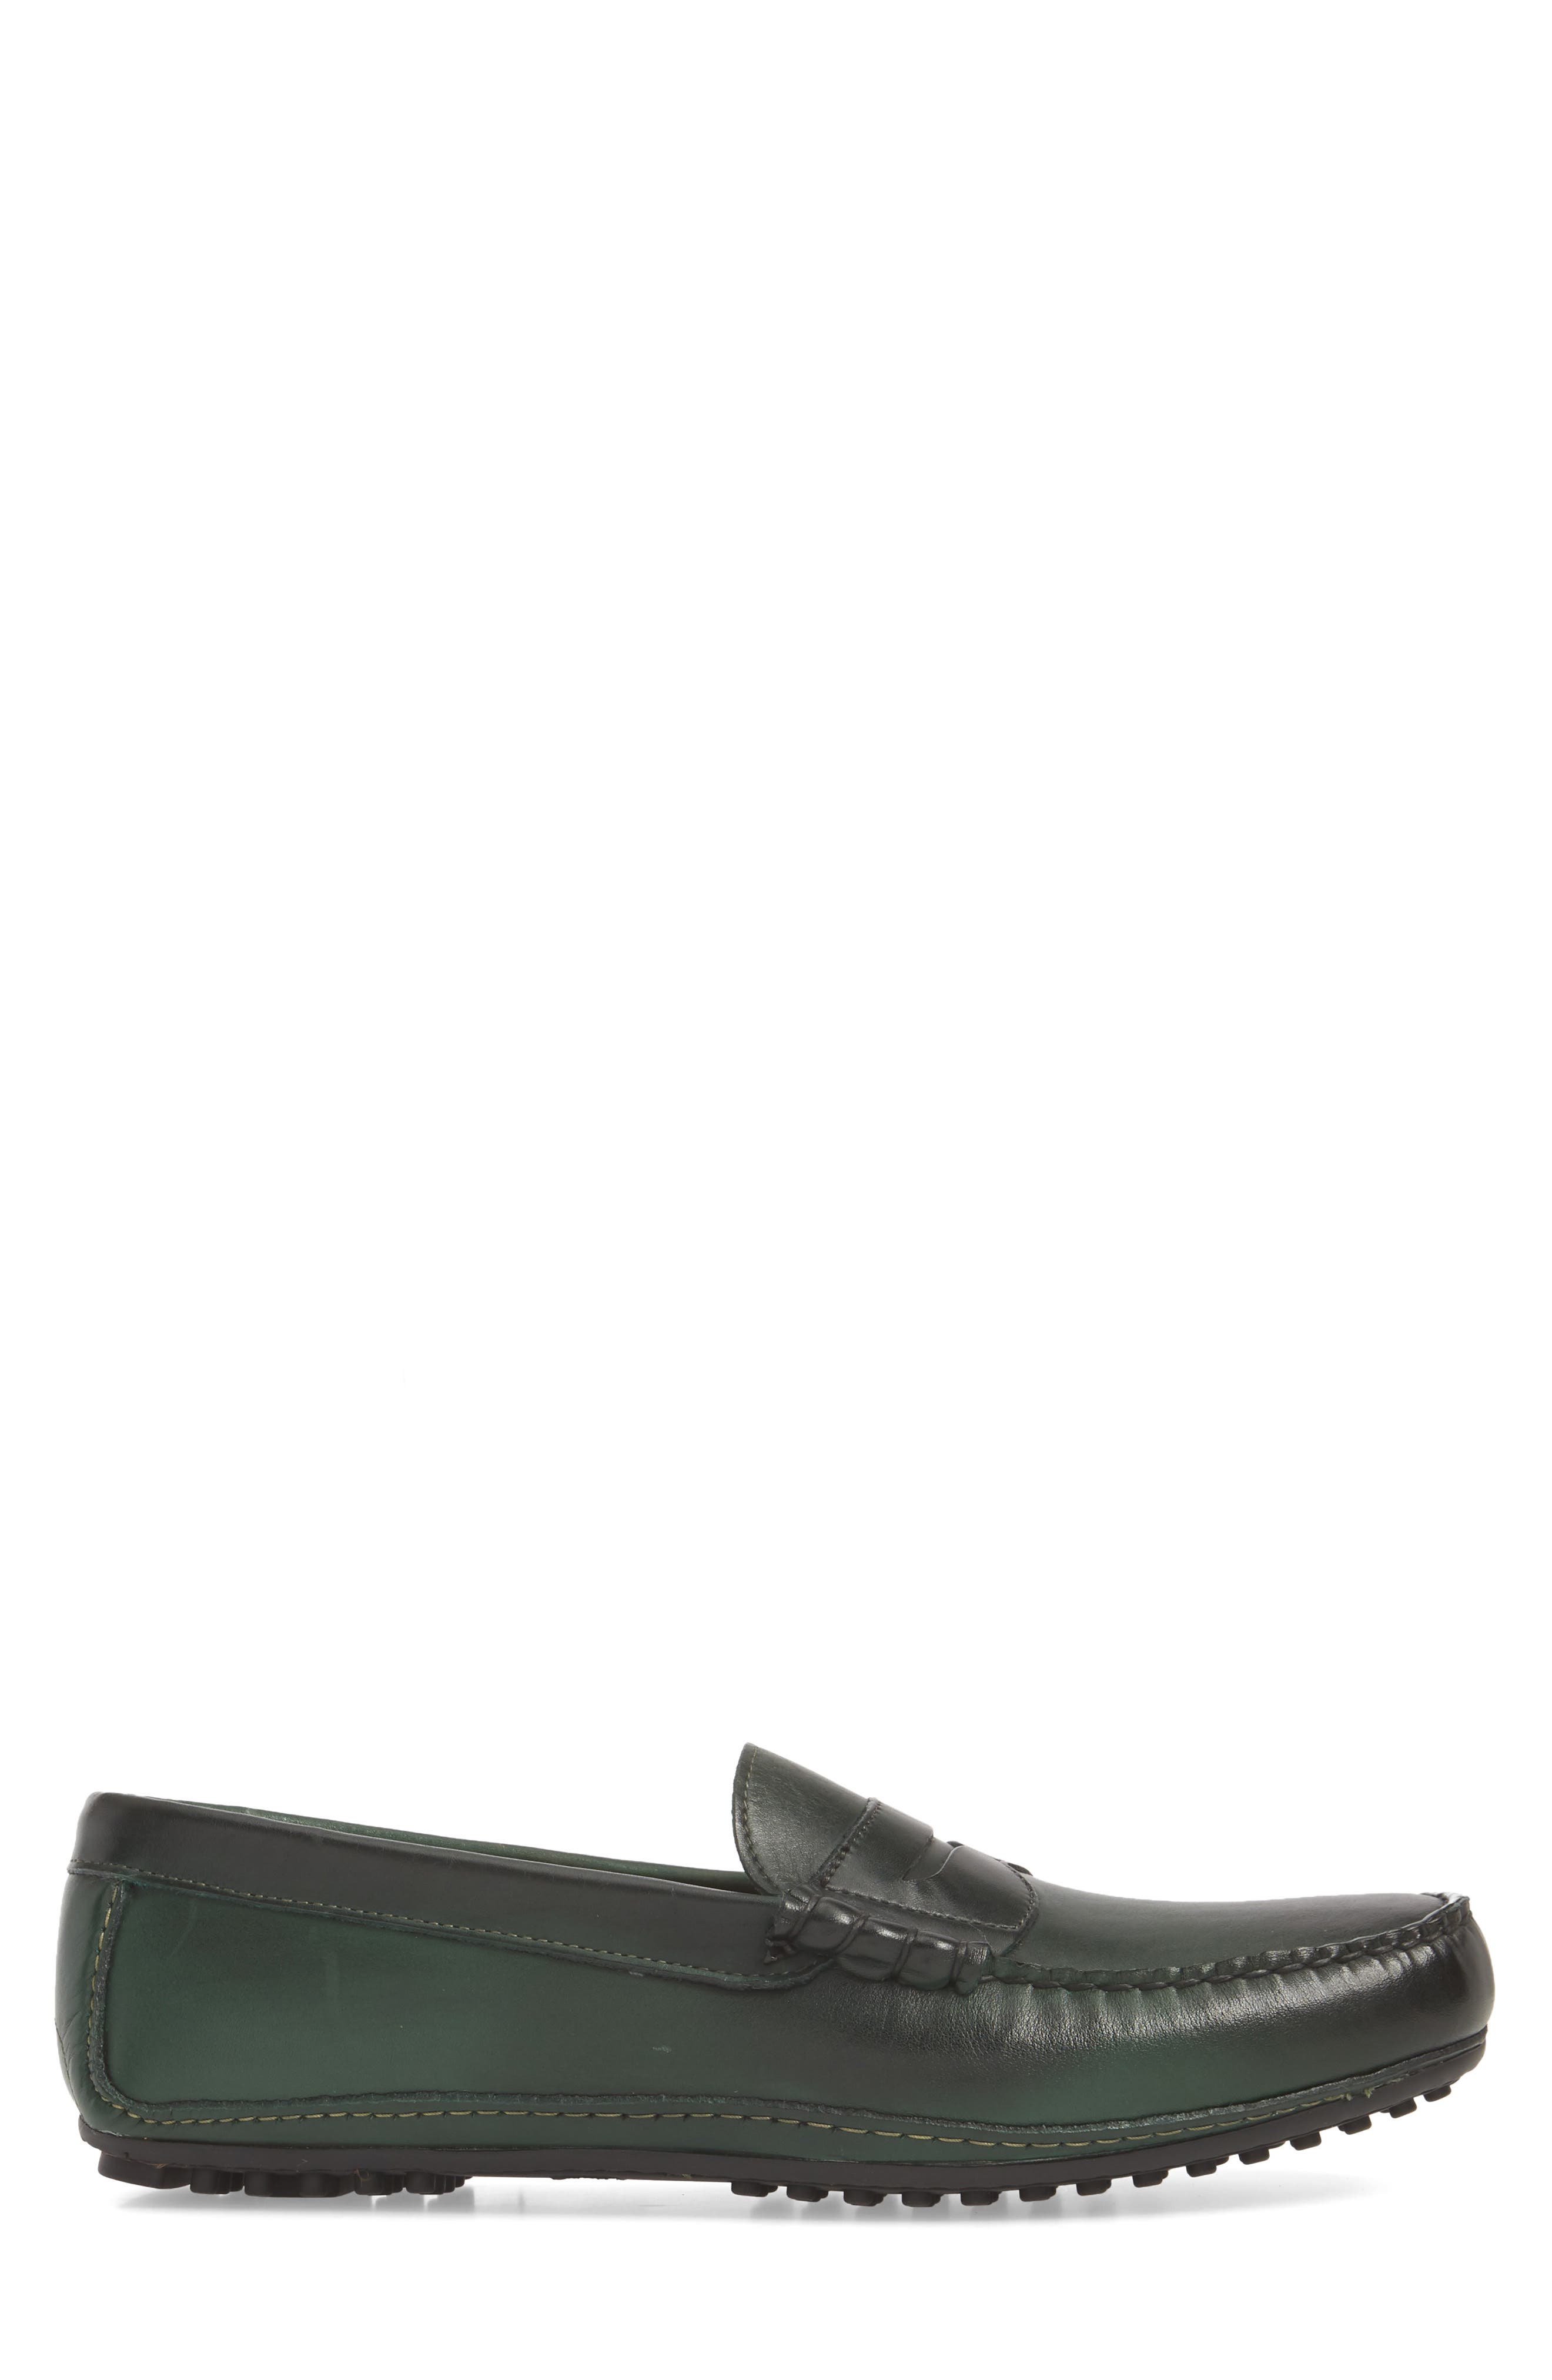 Siesta Key Penny Loafer,                             Alternate thumbnail 3, color,                             GREEN LEATHER